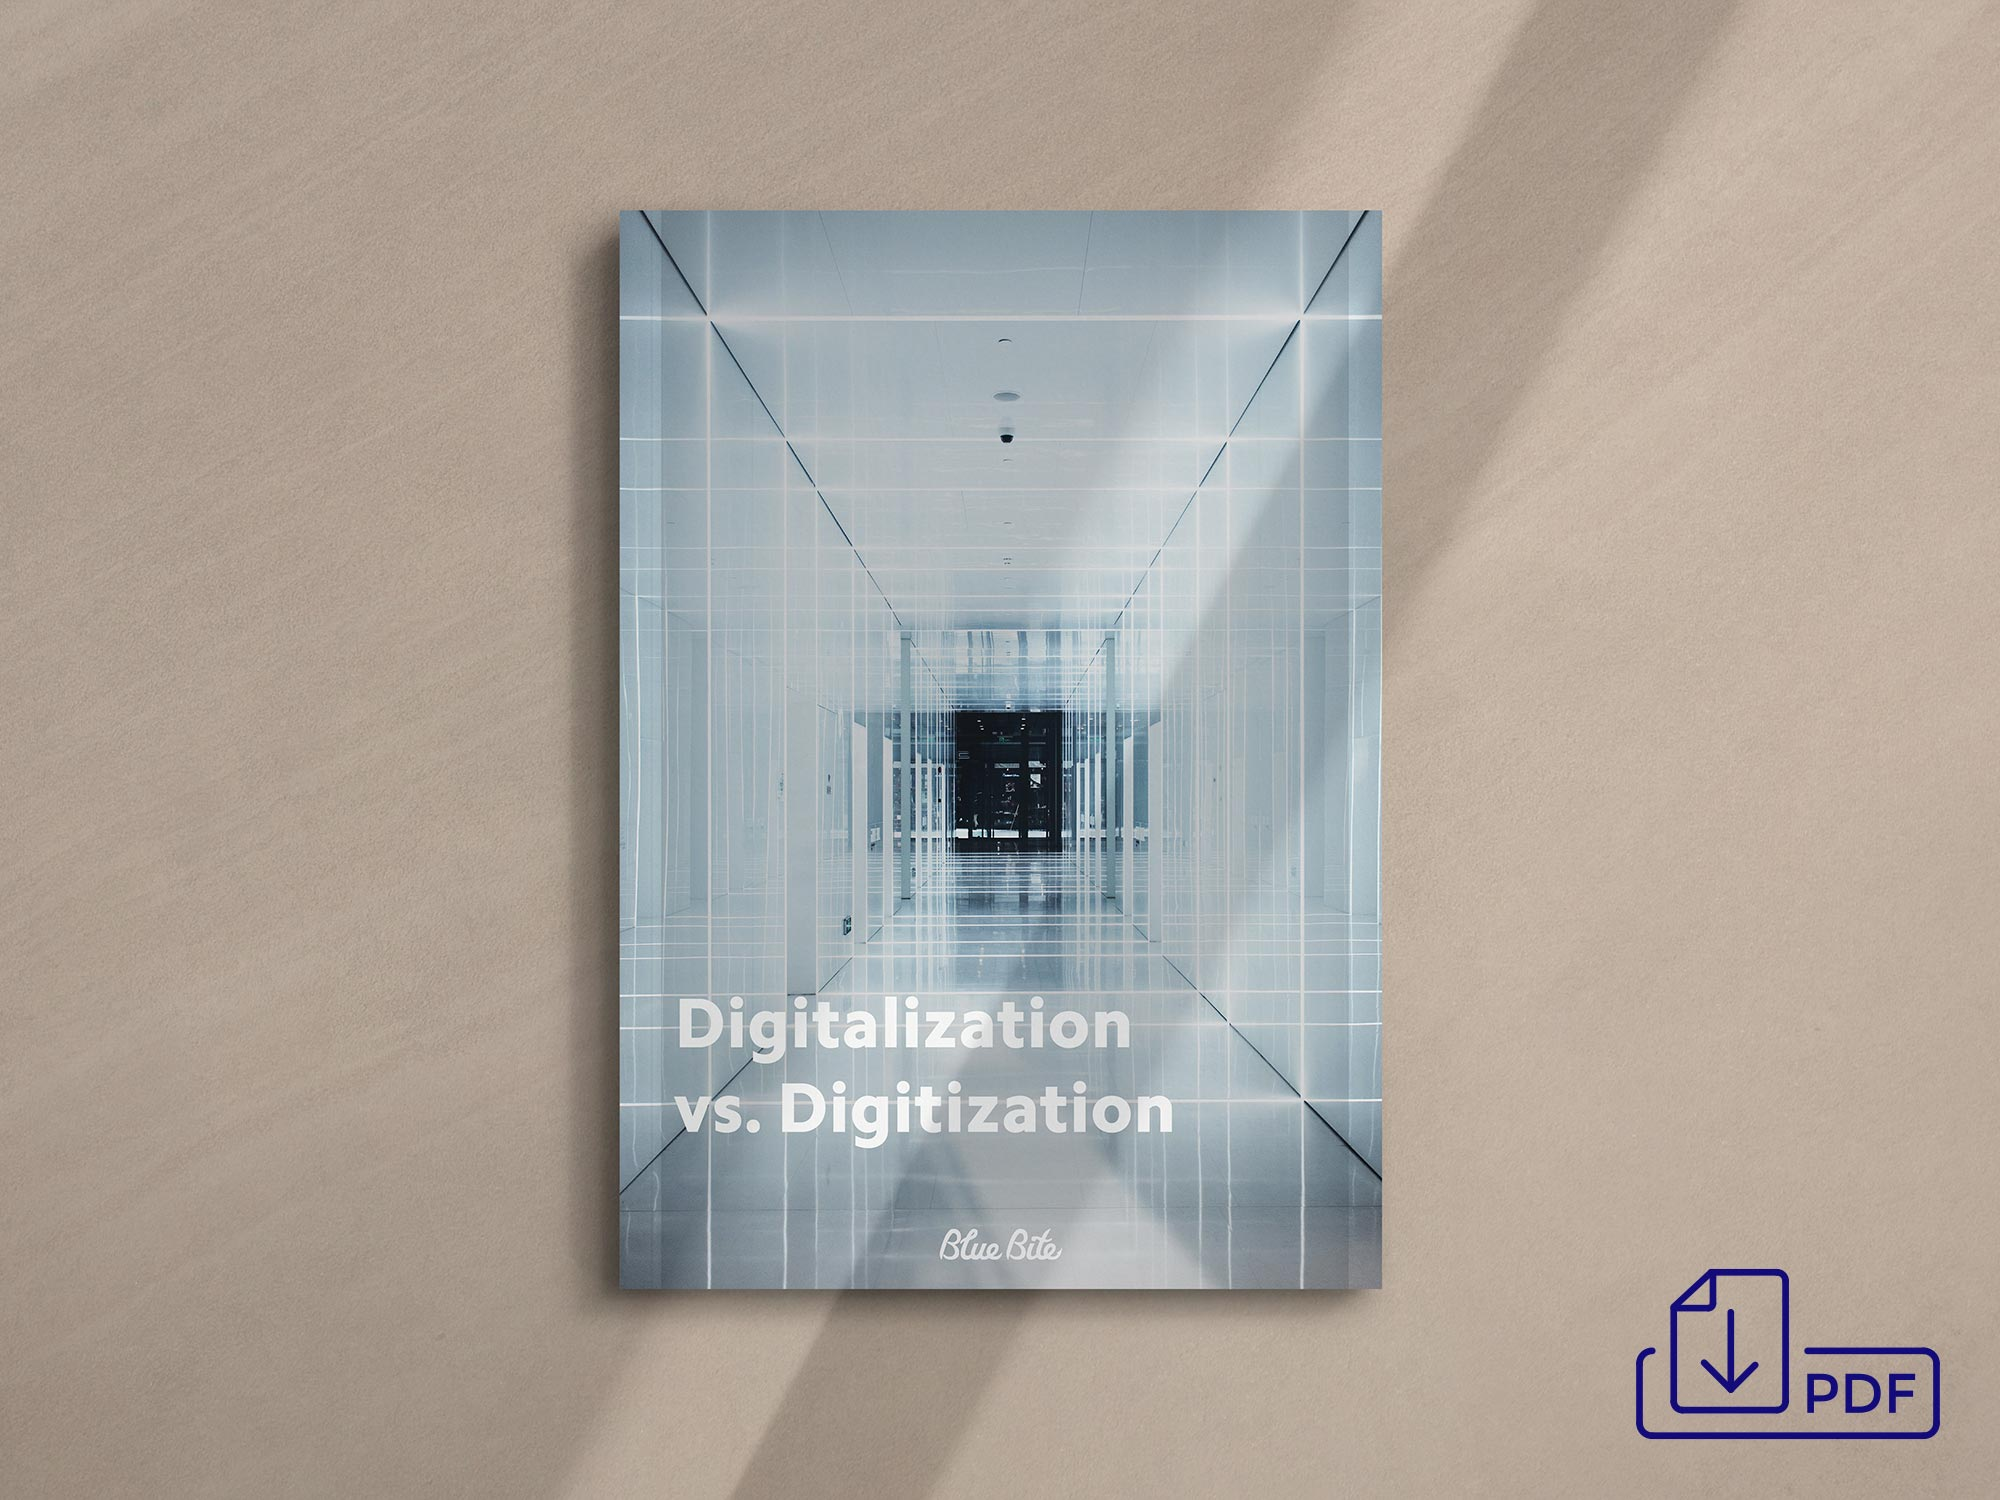 Get the Digitalization vs Digitization PDF